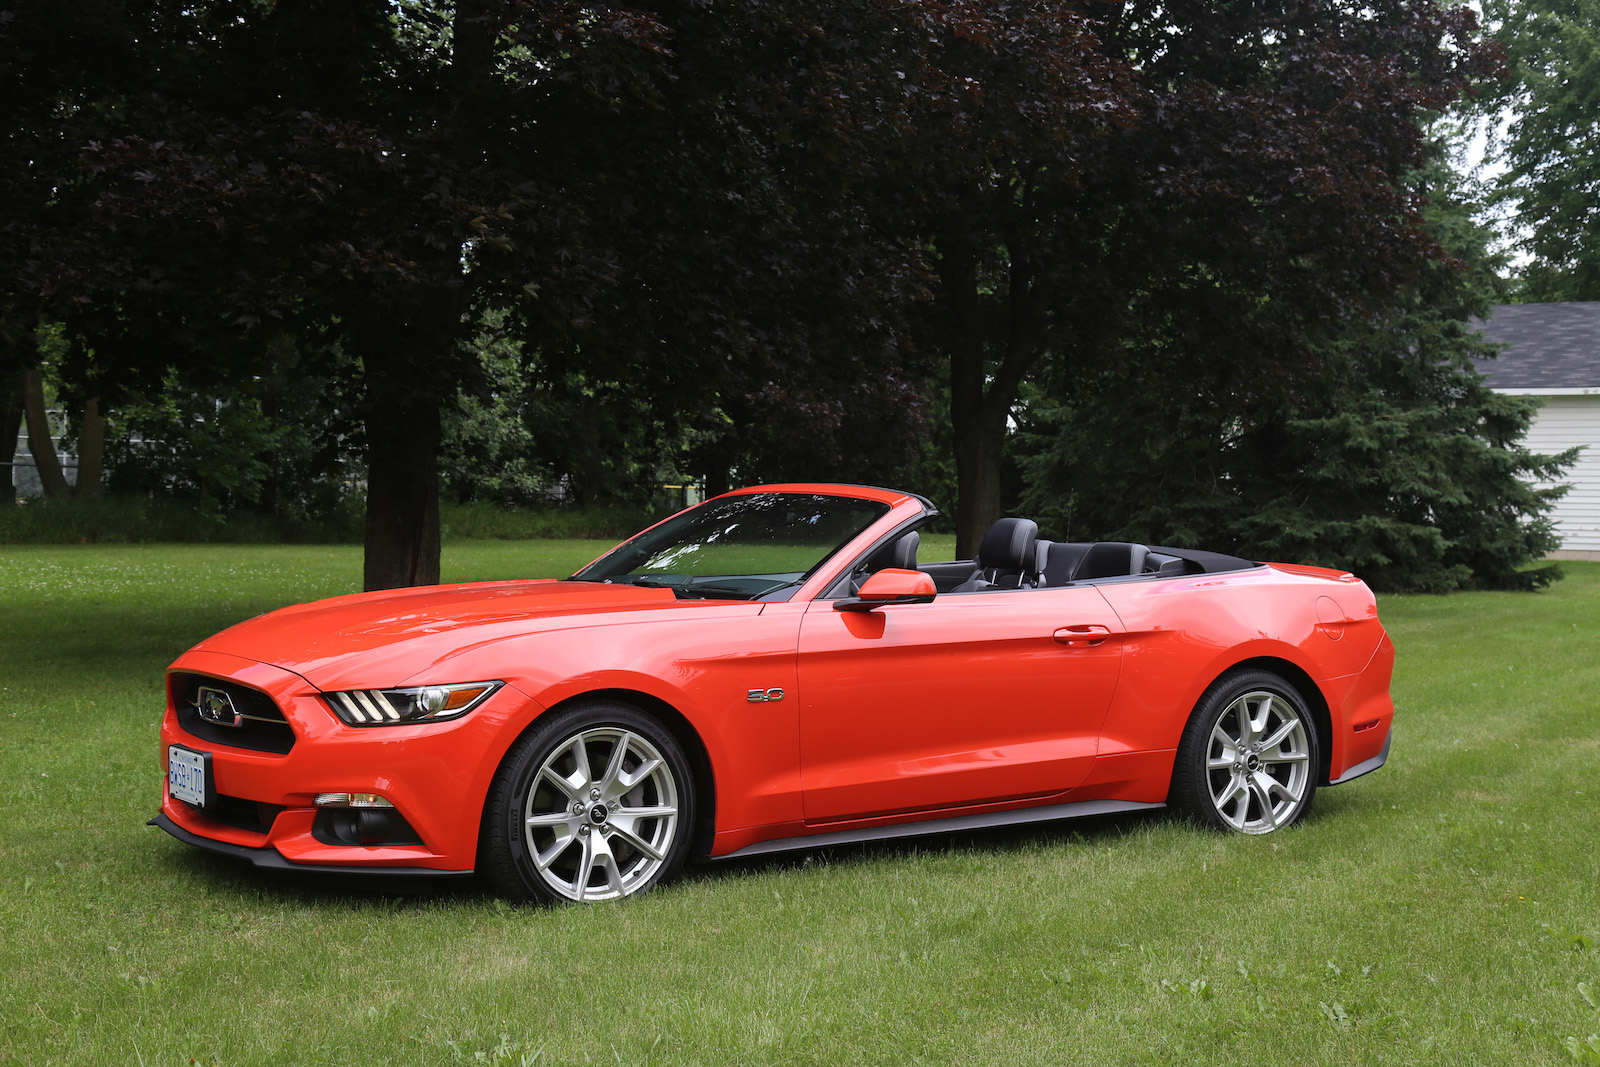 Lastest Review 2015 Ford Mustang GT Convertible  Canadian Auto Review